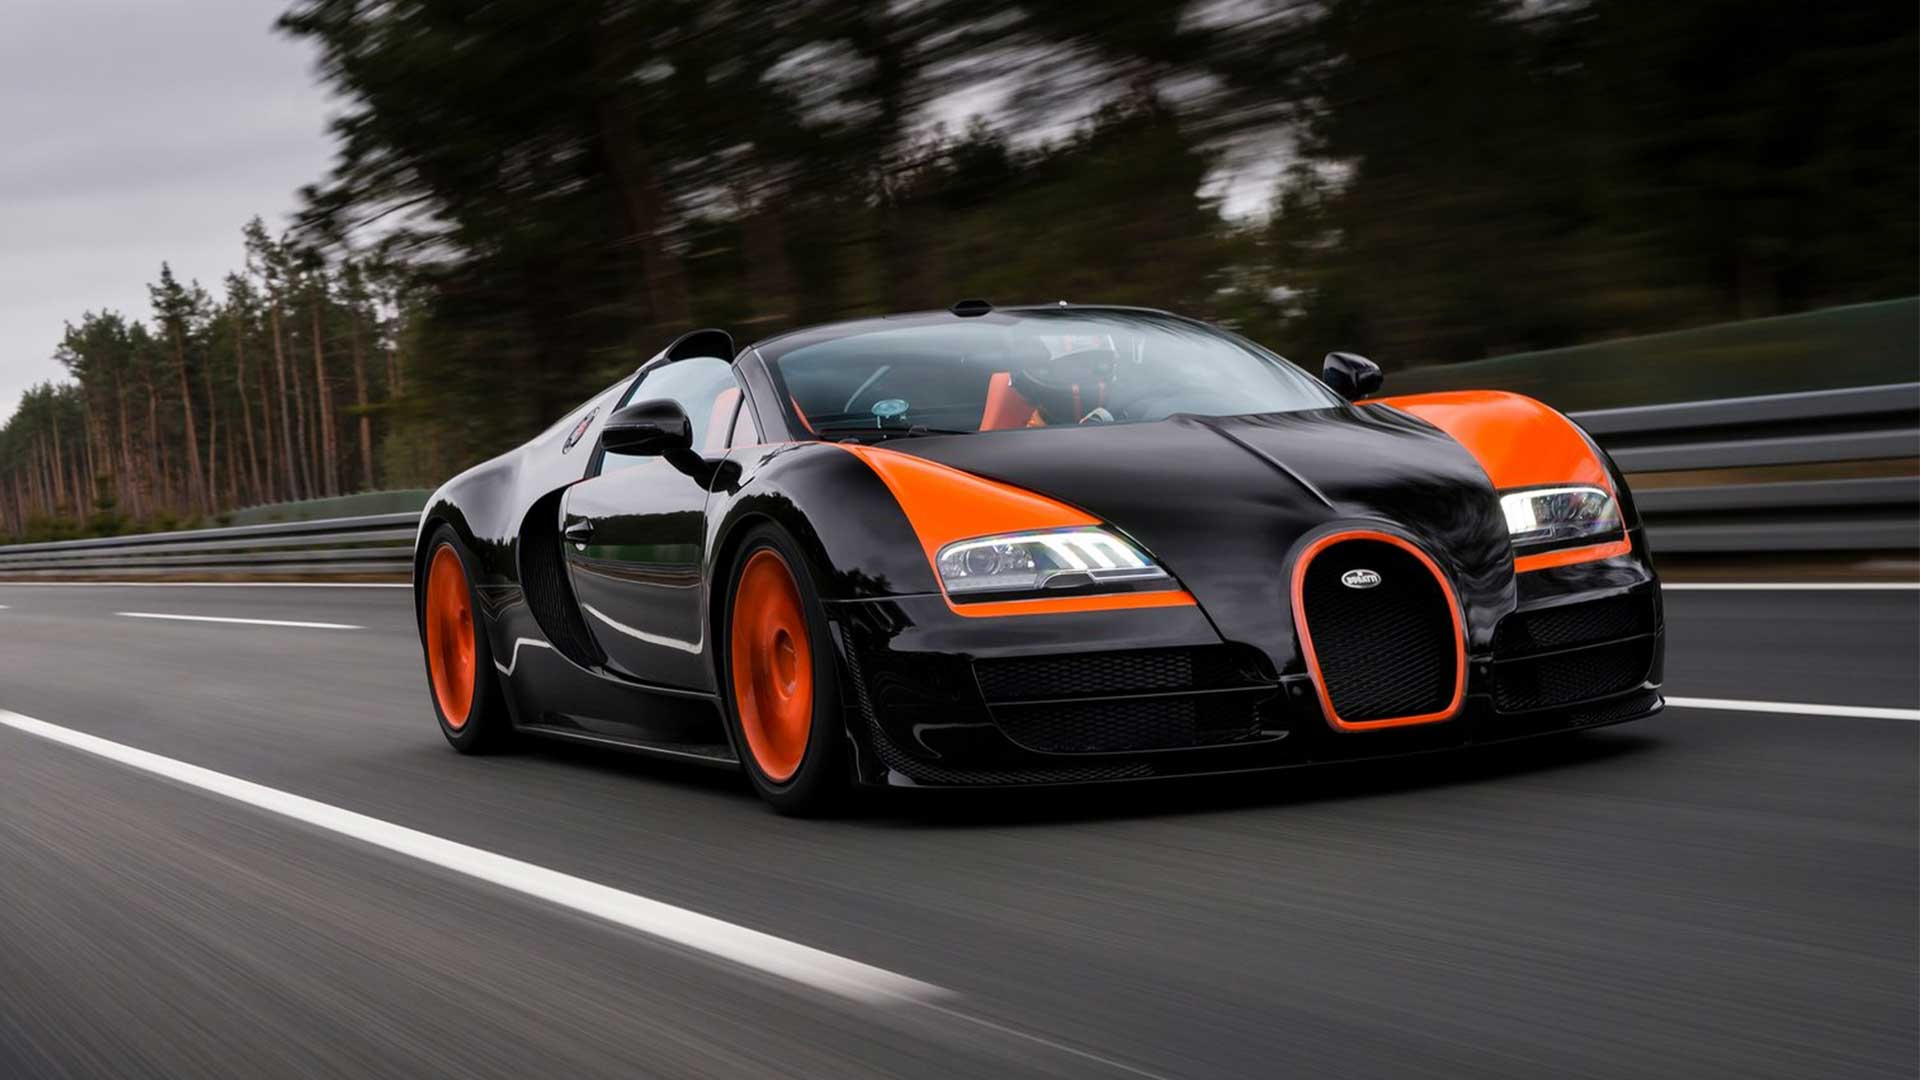 Top Bugatti Veyron Grand Sport Vitesse WRC CARBLADE Wallpaper Desktop Download